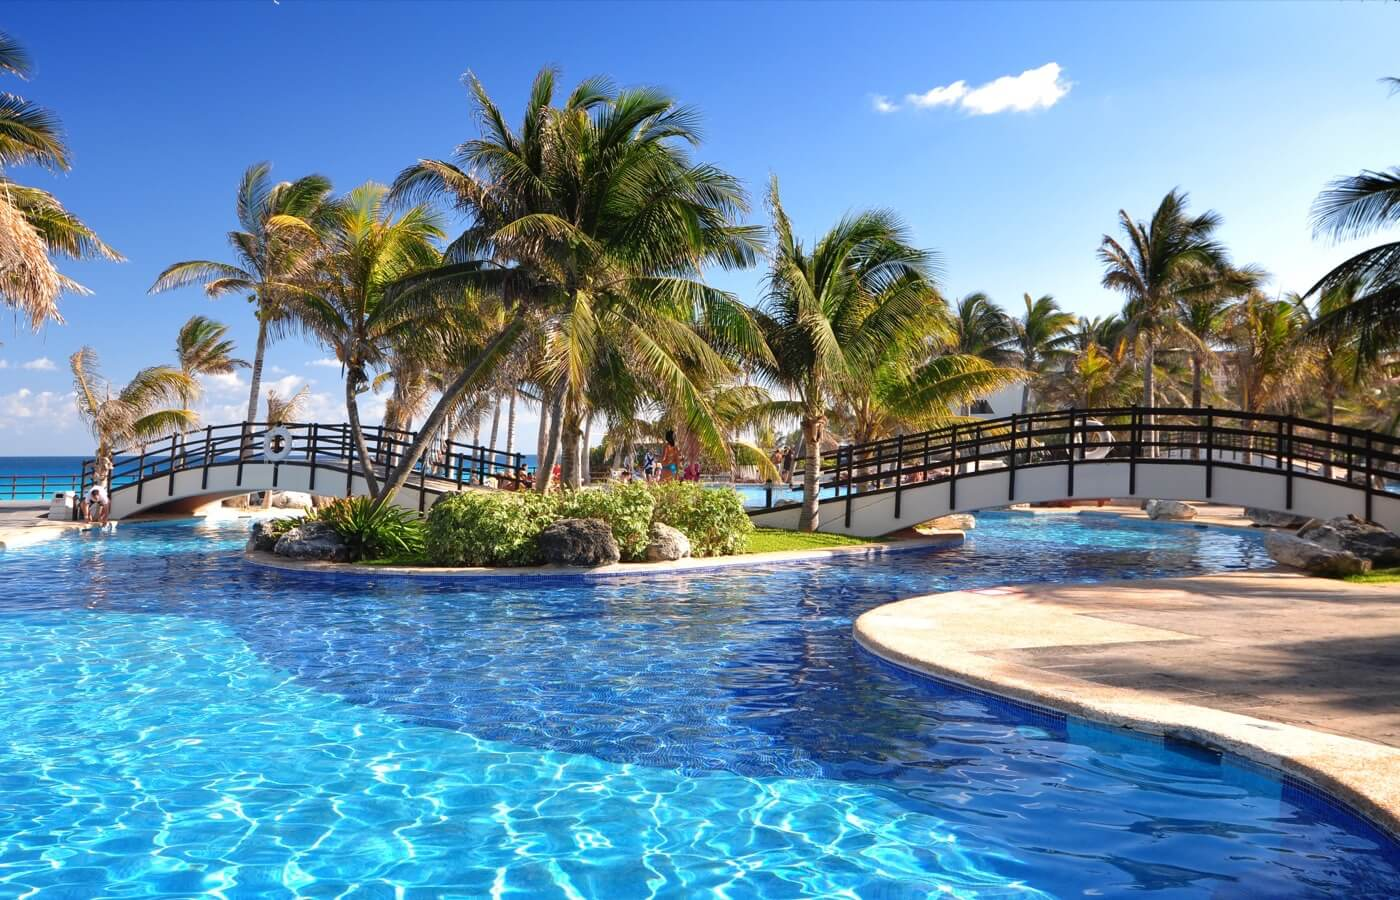 Swimming pools overlooking the bridge with palm trees at Hotel Grand Oasis Cancun